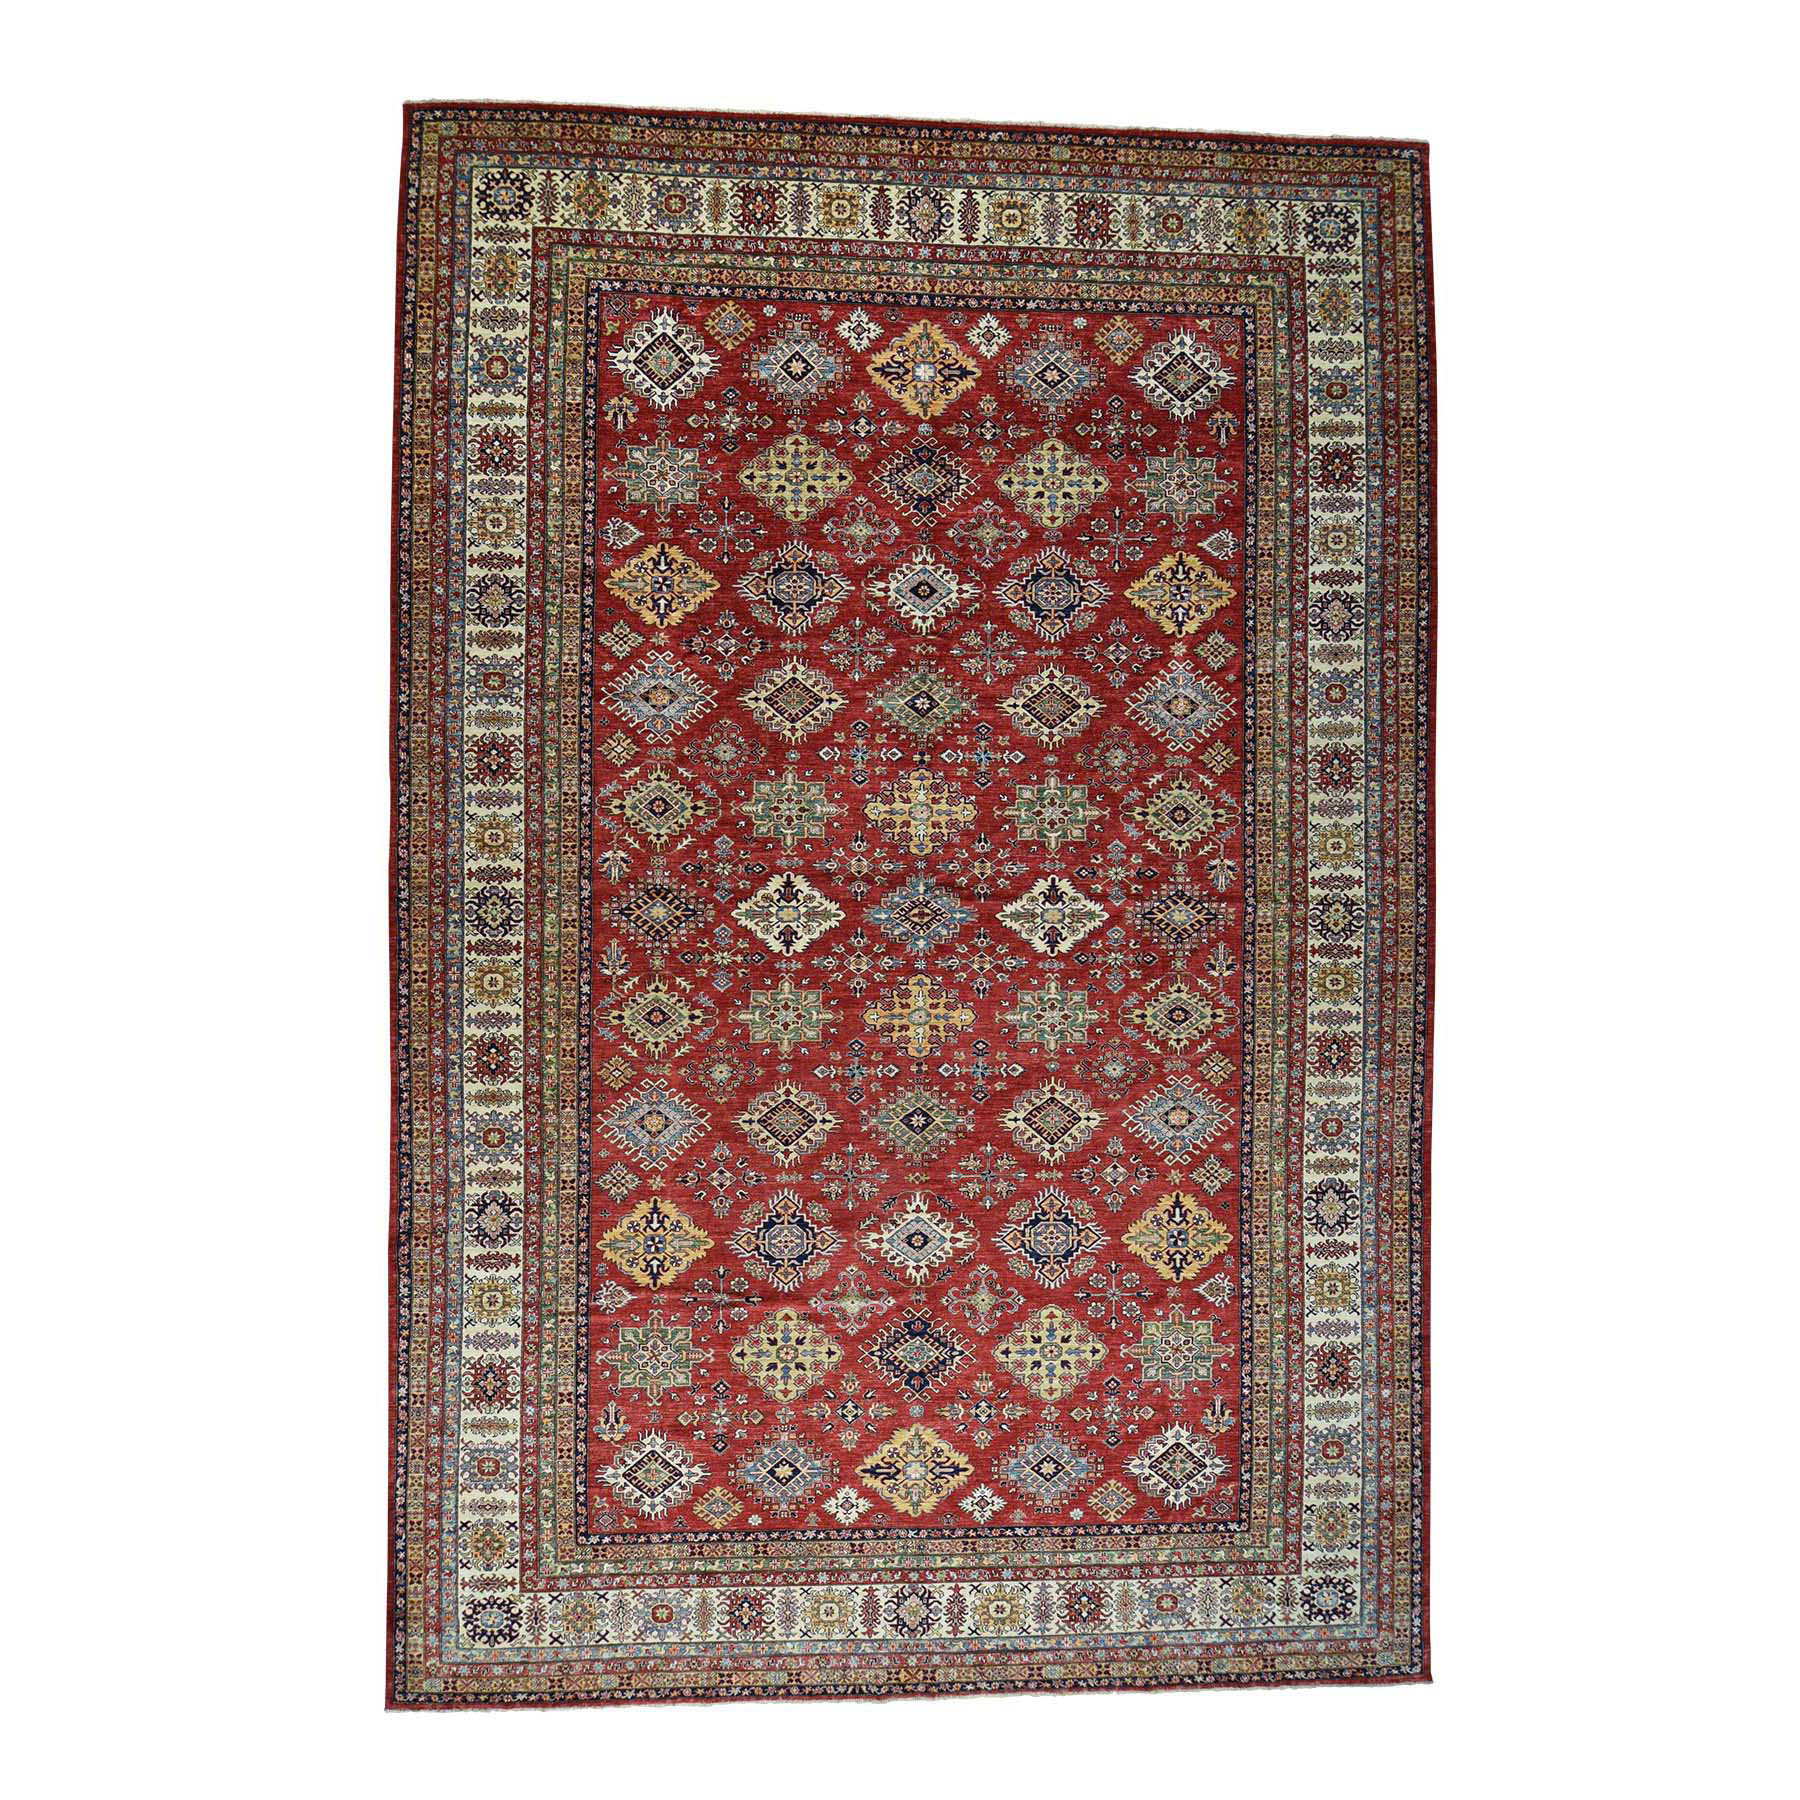 "13'1""x19'10"" Oversize Hand-Knotted Pure Wool Super Kazak Oriental Rug"